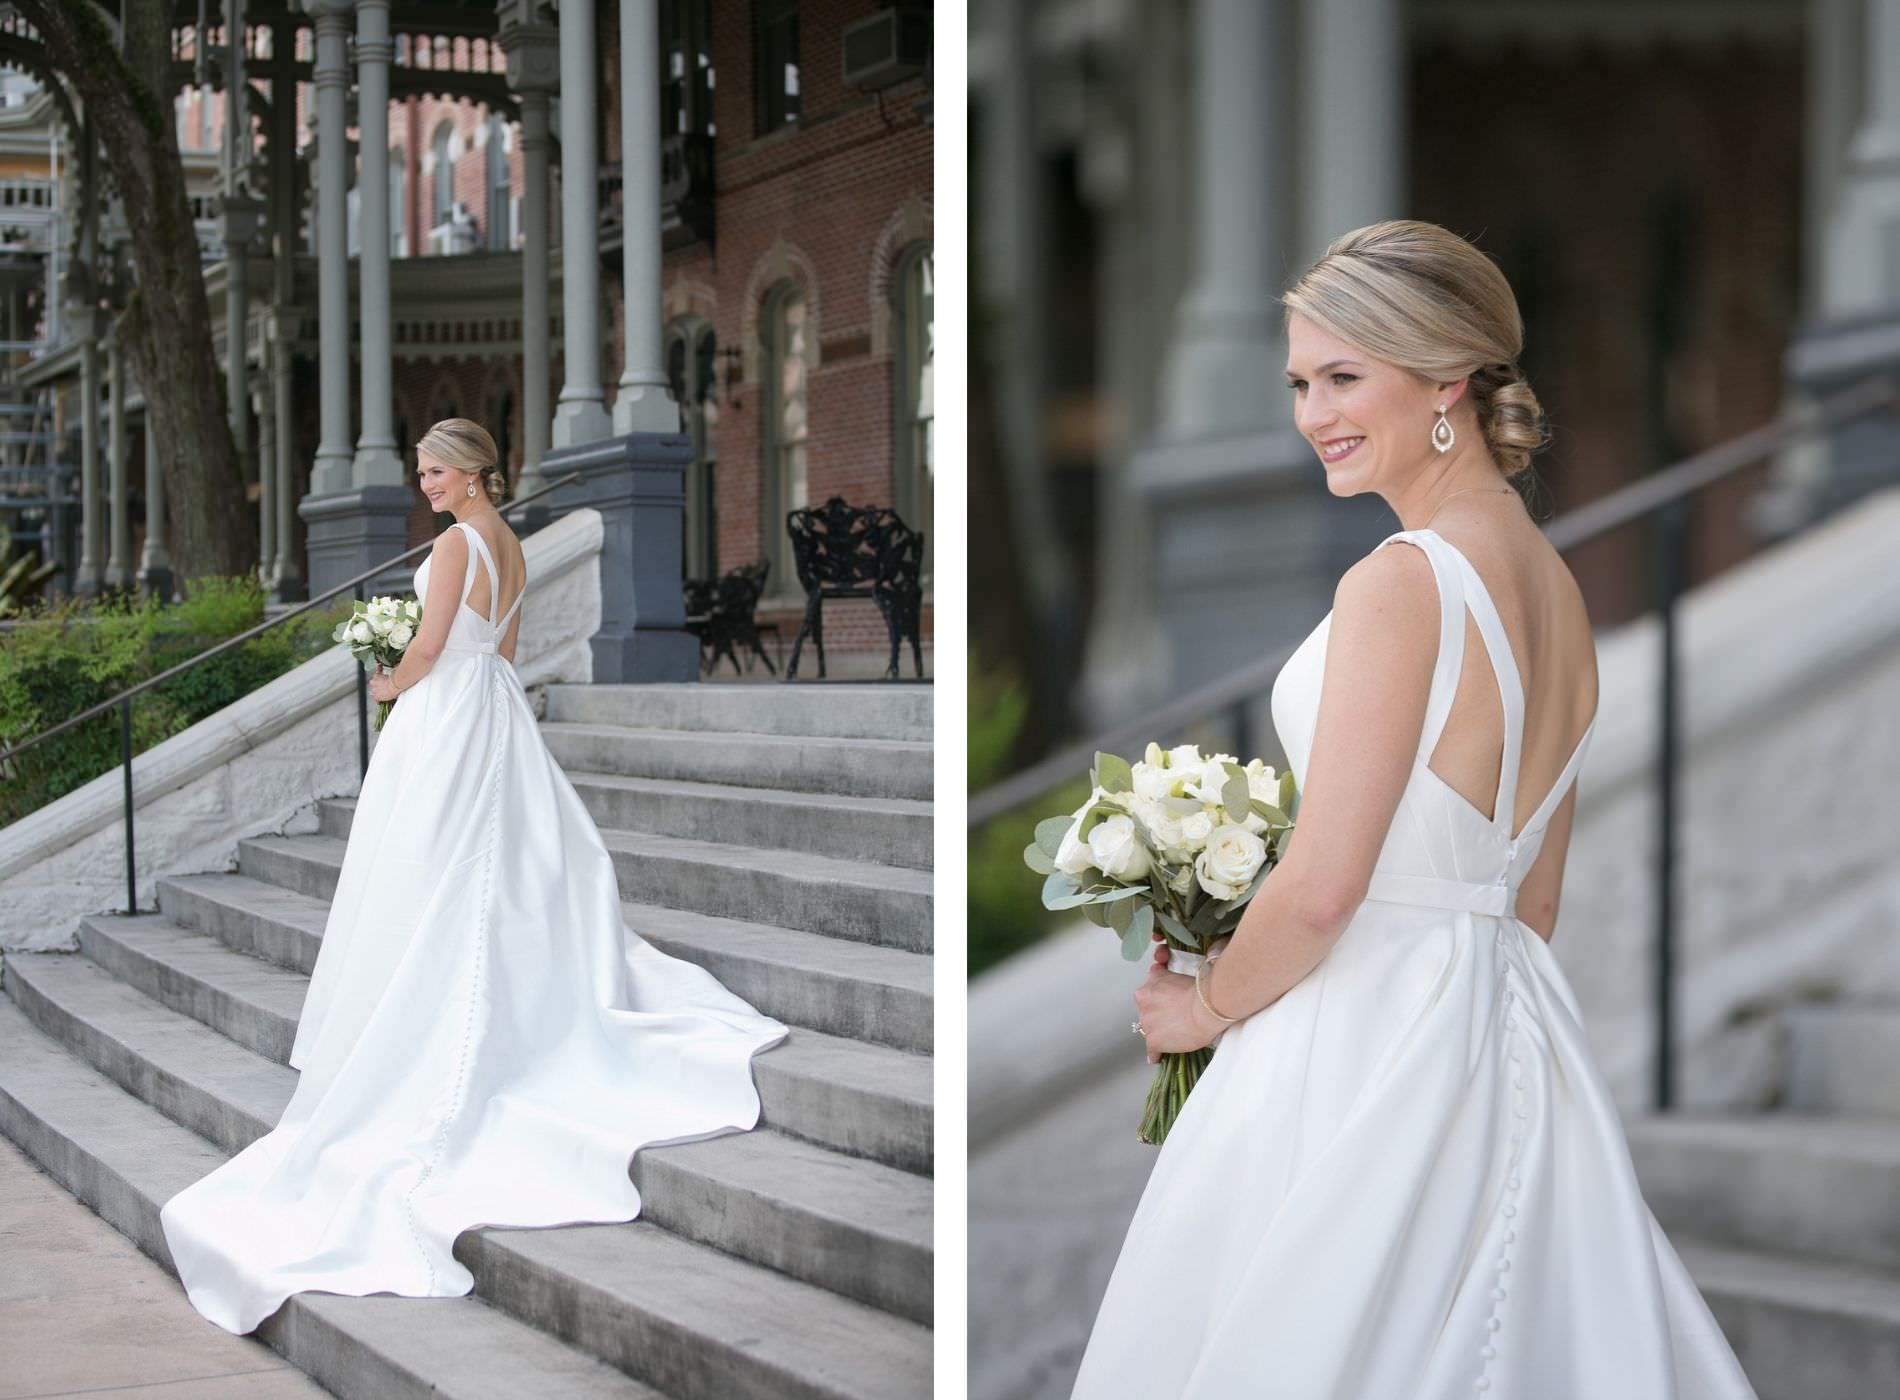 Bridal Outdoor Portrait in Downtown Tampa at Plant Museum UT | Bateau Neck Mikado Satin Martina Liana Simple Elegant Wedding Dress with Buttons Down Back | Neutral White Rose and Greenery Bouquet | Carrie Wildes Photography